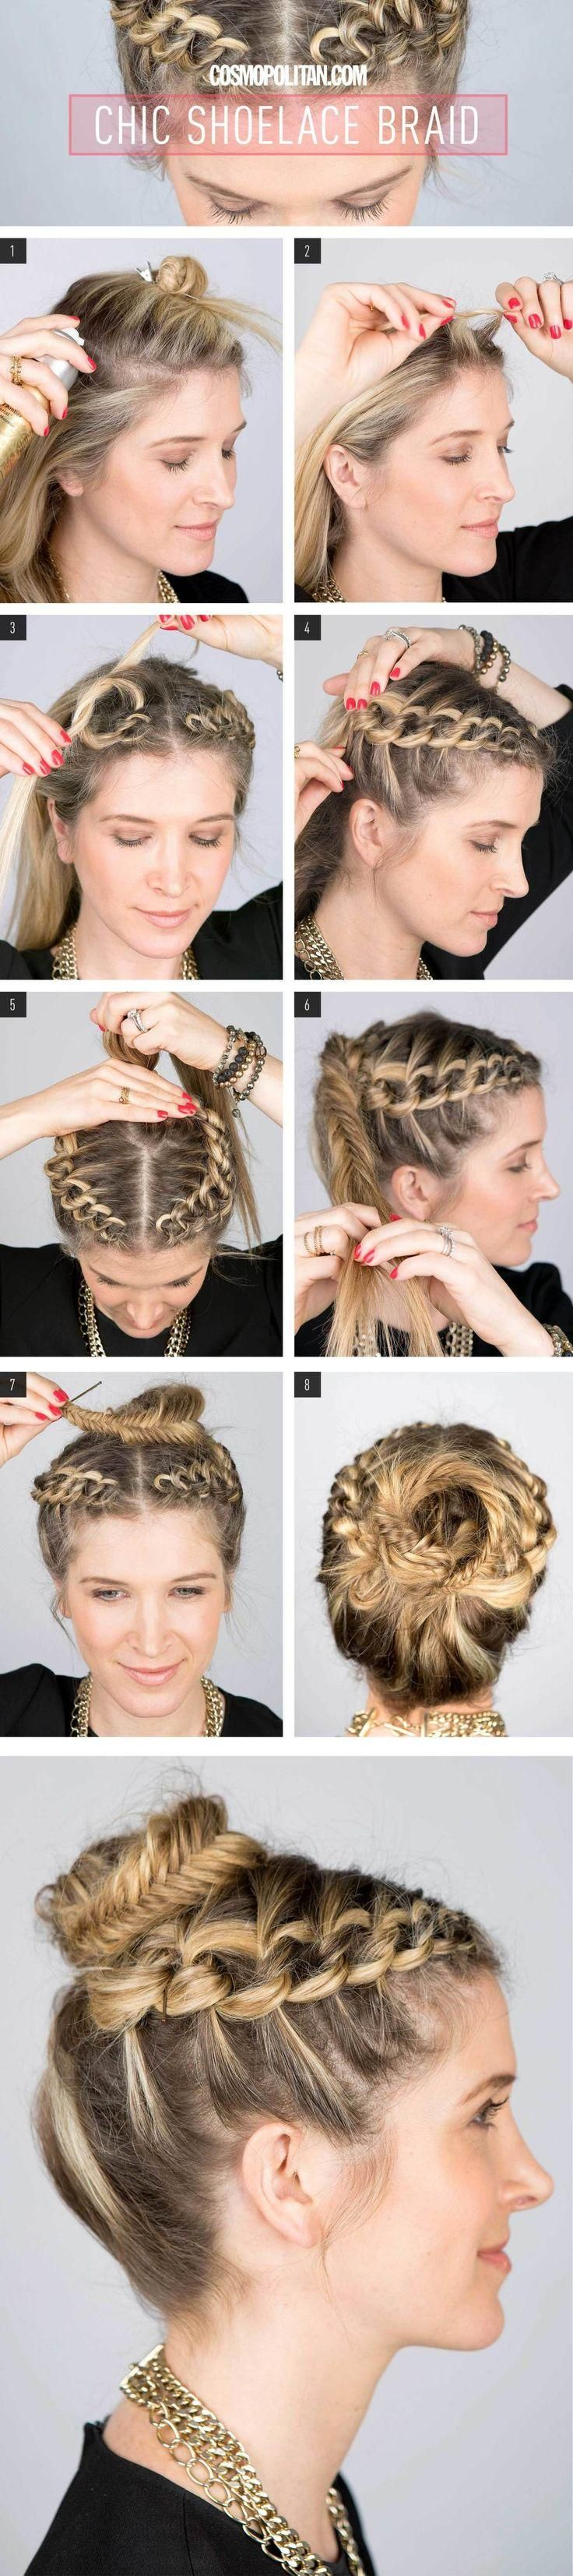 Tutorials: 12 Super Easy DIY Wedding Hairstyles